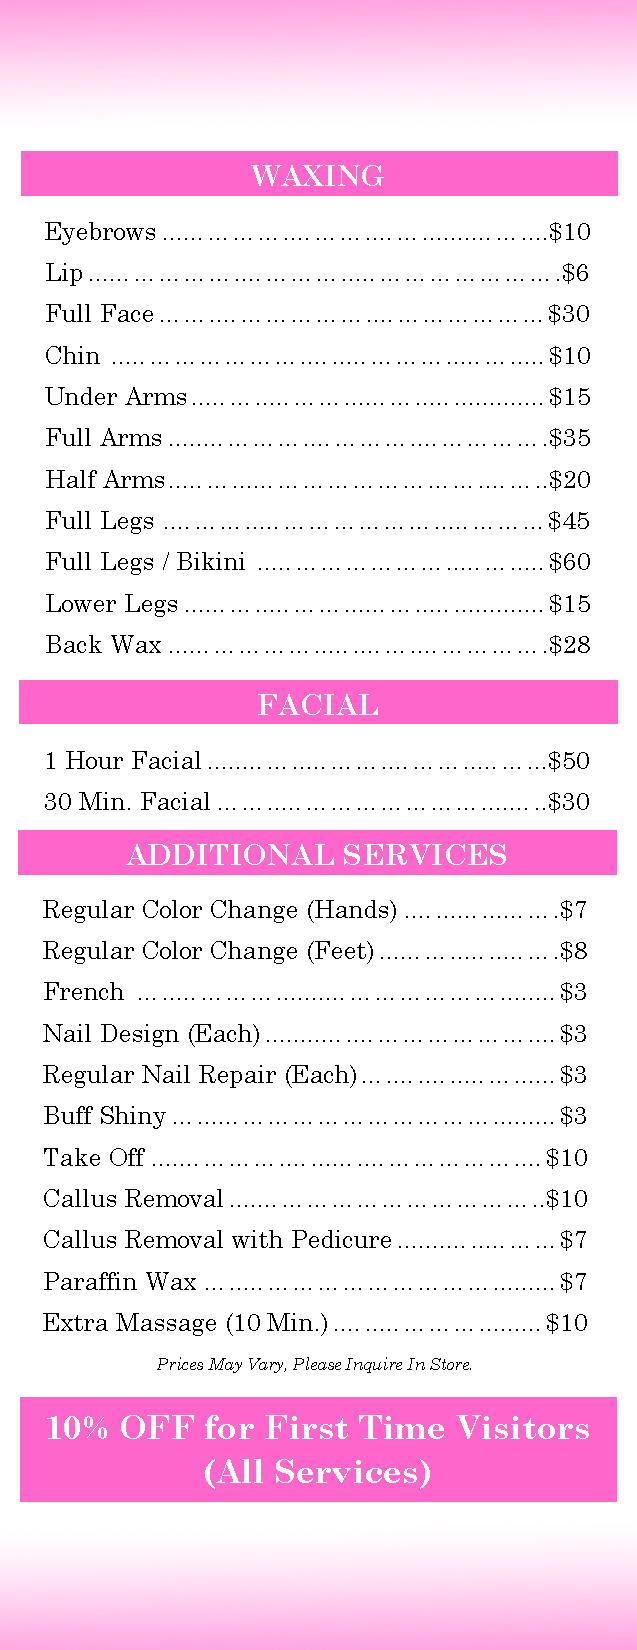 Princess-Salon-Brochure-new-on-1-12-2014-v3-page-21-11-1